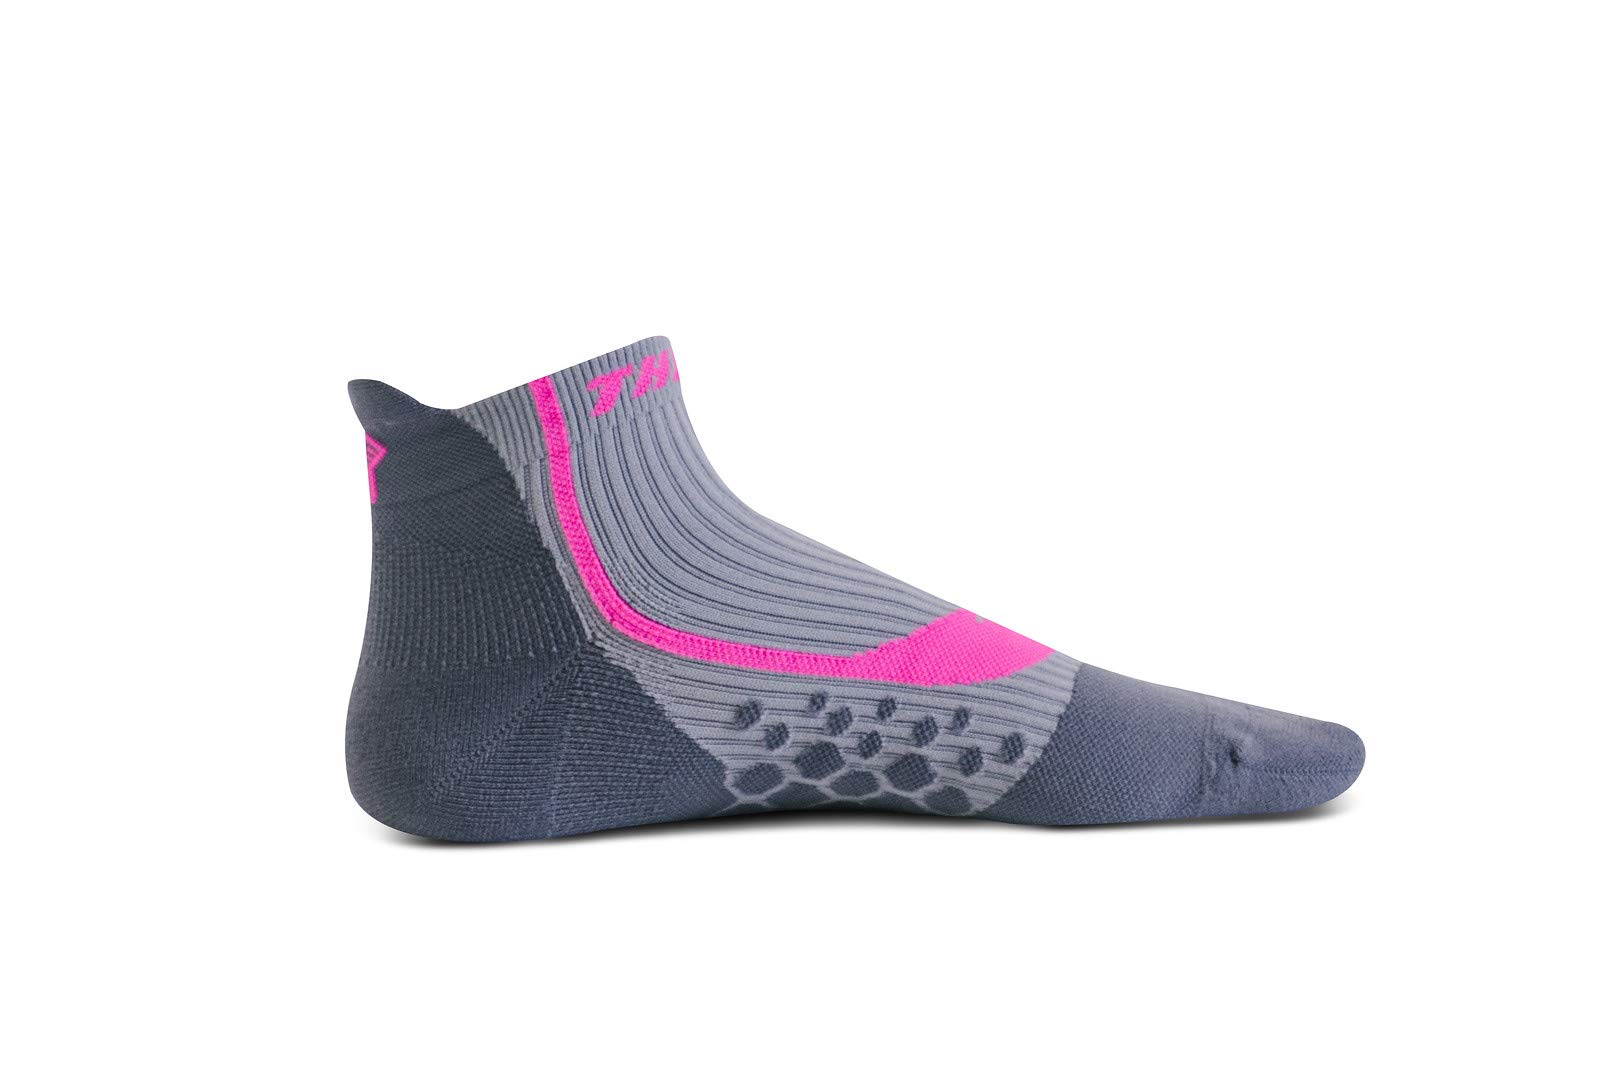 Thirty 48 Compression Low-Cut Running Socks for Men and Women (Small - Women 5-6.5 // Men 6-7.5, [1 Pair] Pink/Gray)